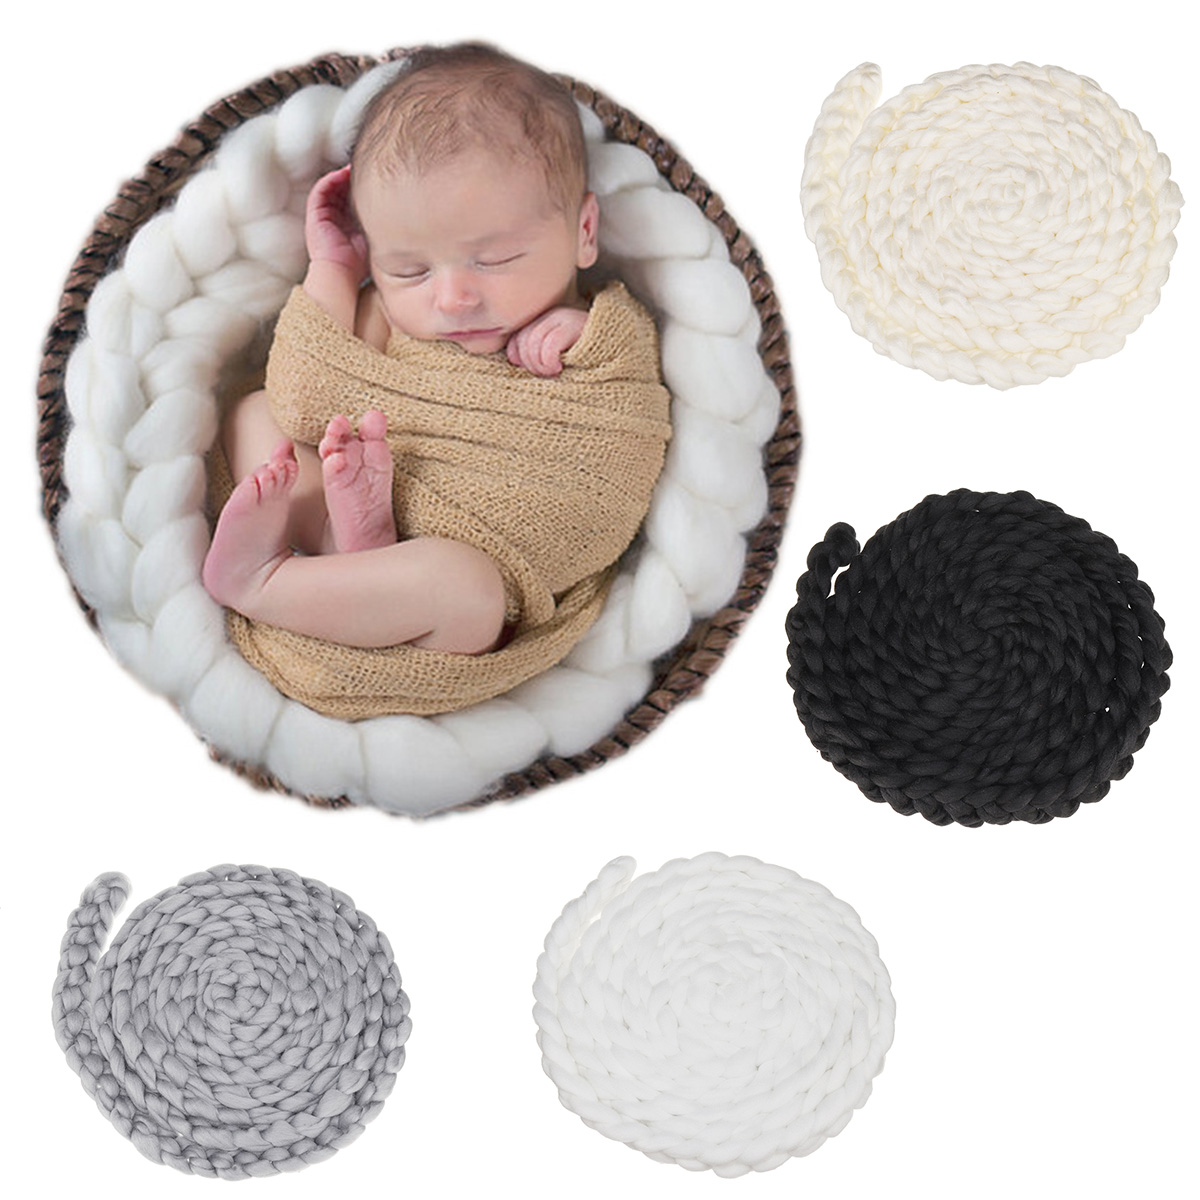 4M Newborn Baby Wool Twist Rope Photo kids costume Props Handmade Crochet Knitted Costume Backdrop Background Photography Prop